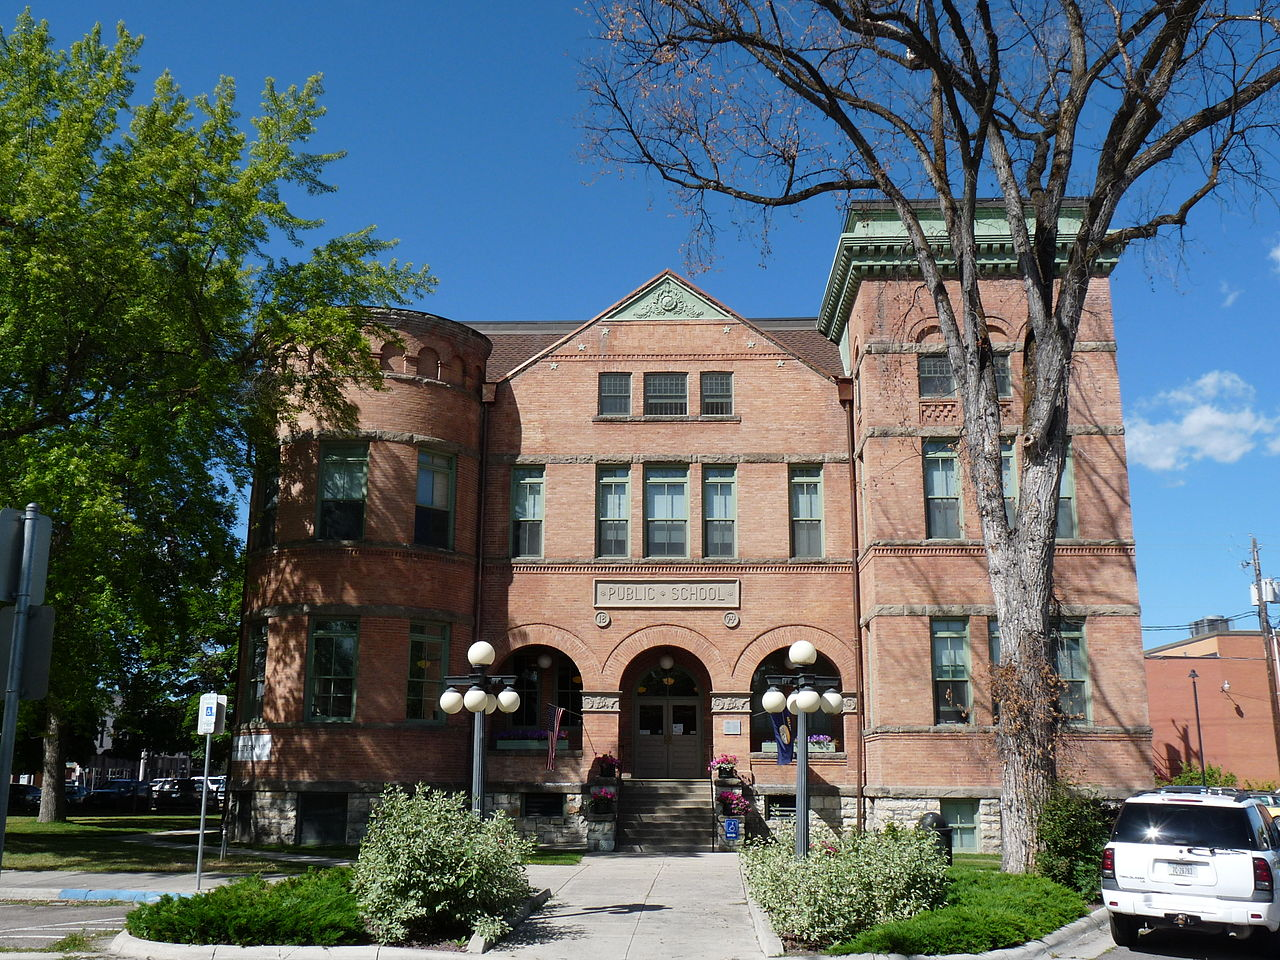 The historic Central School was built in 1894 and is now the location of the Northwest Montana History Museum.